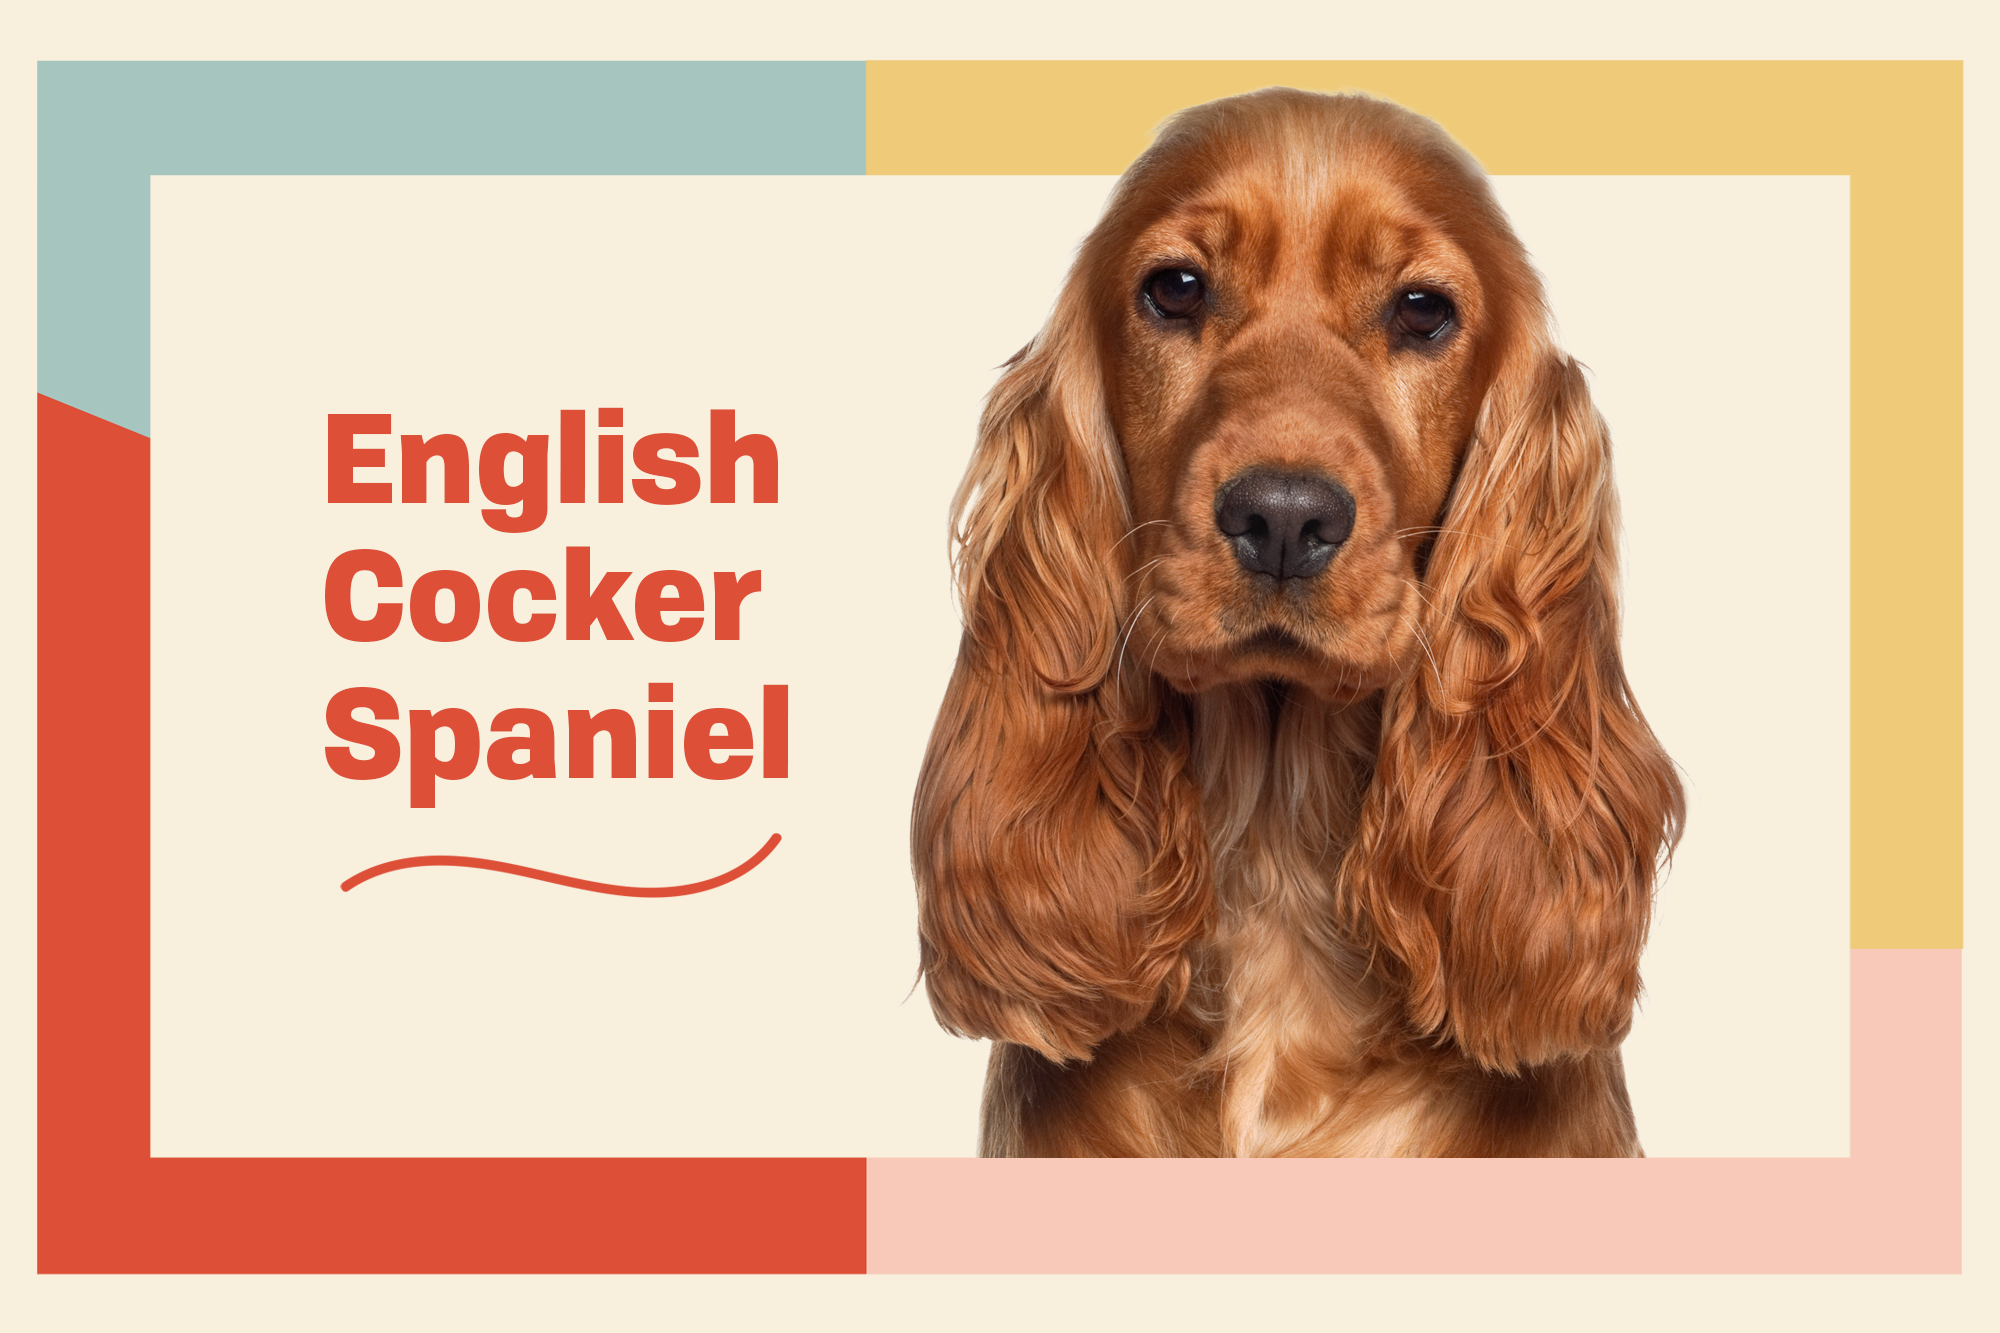 English Cocker Spaniel Breed Photo